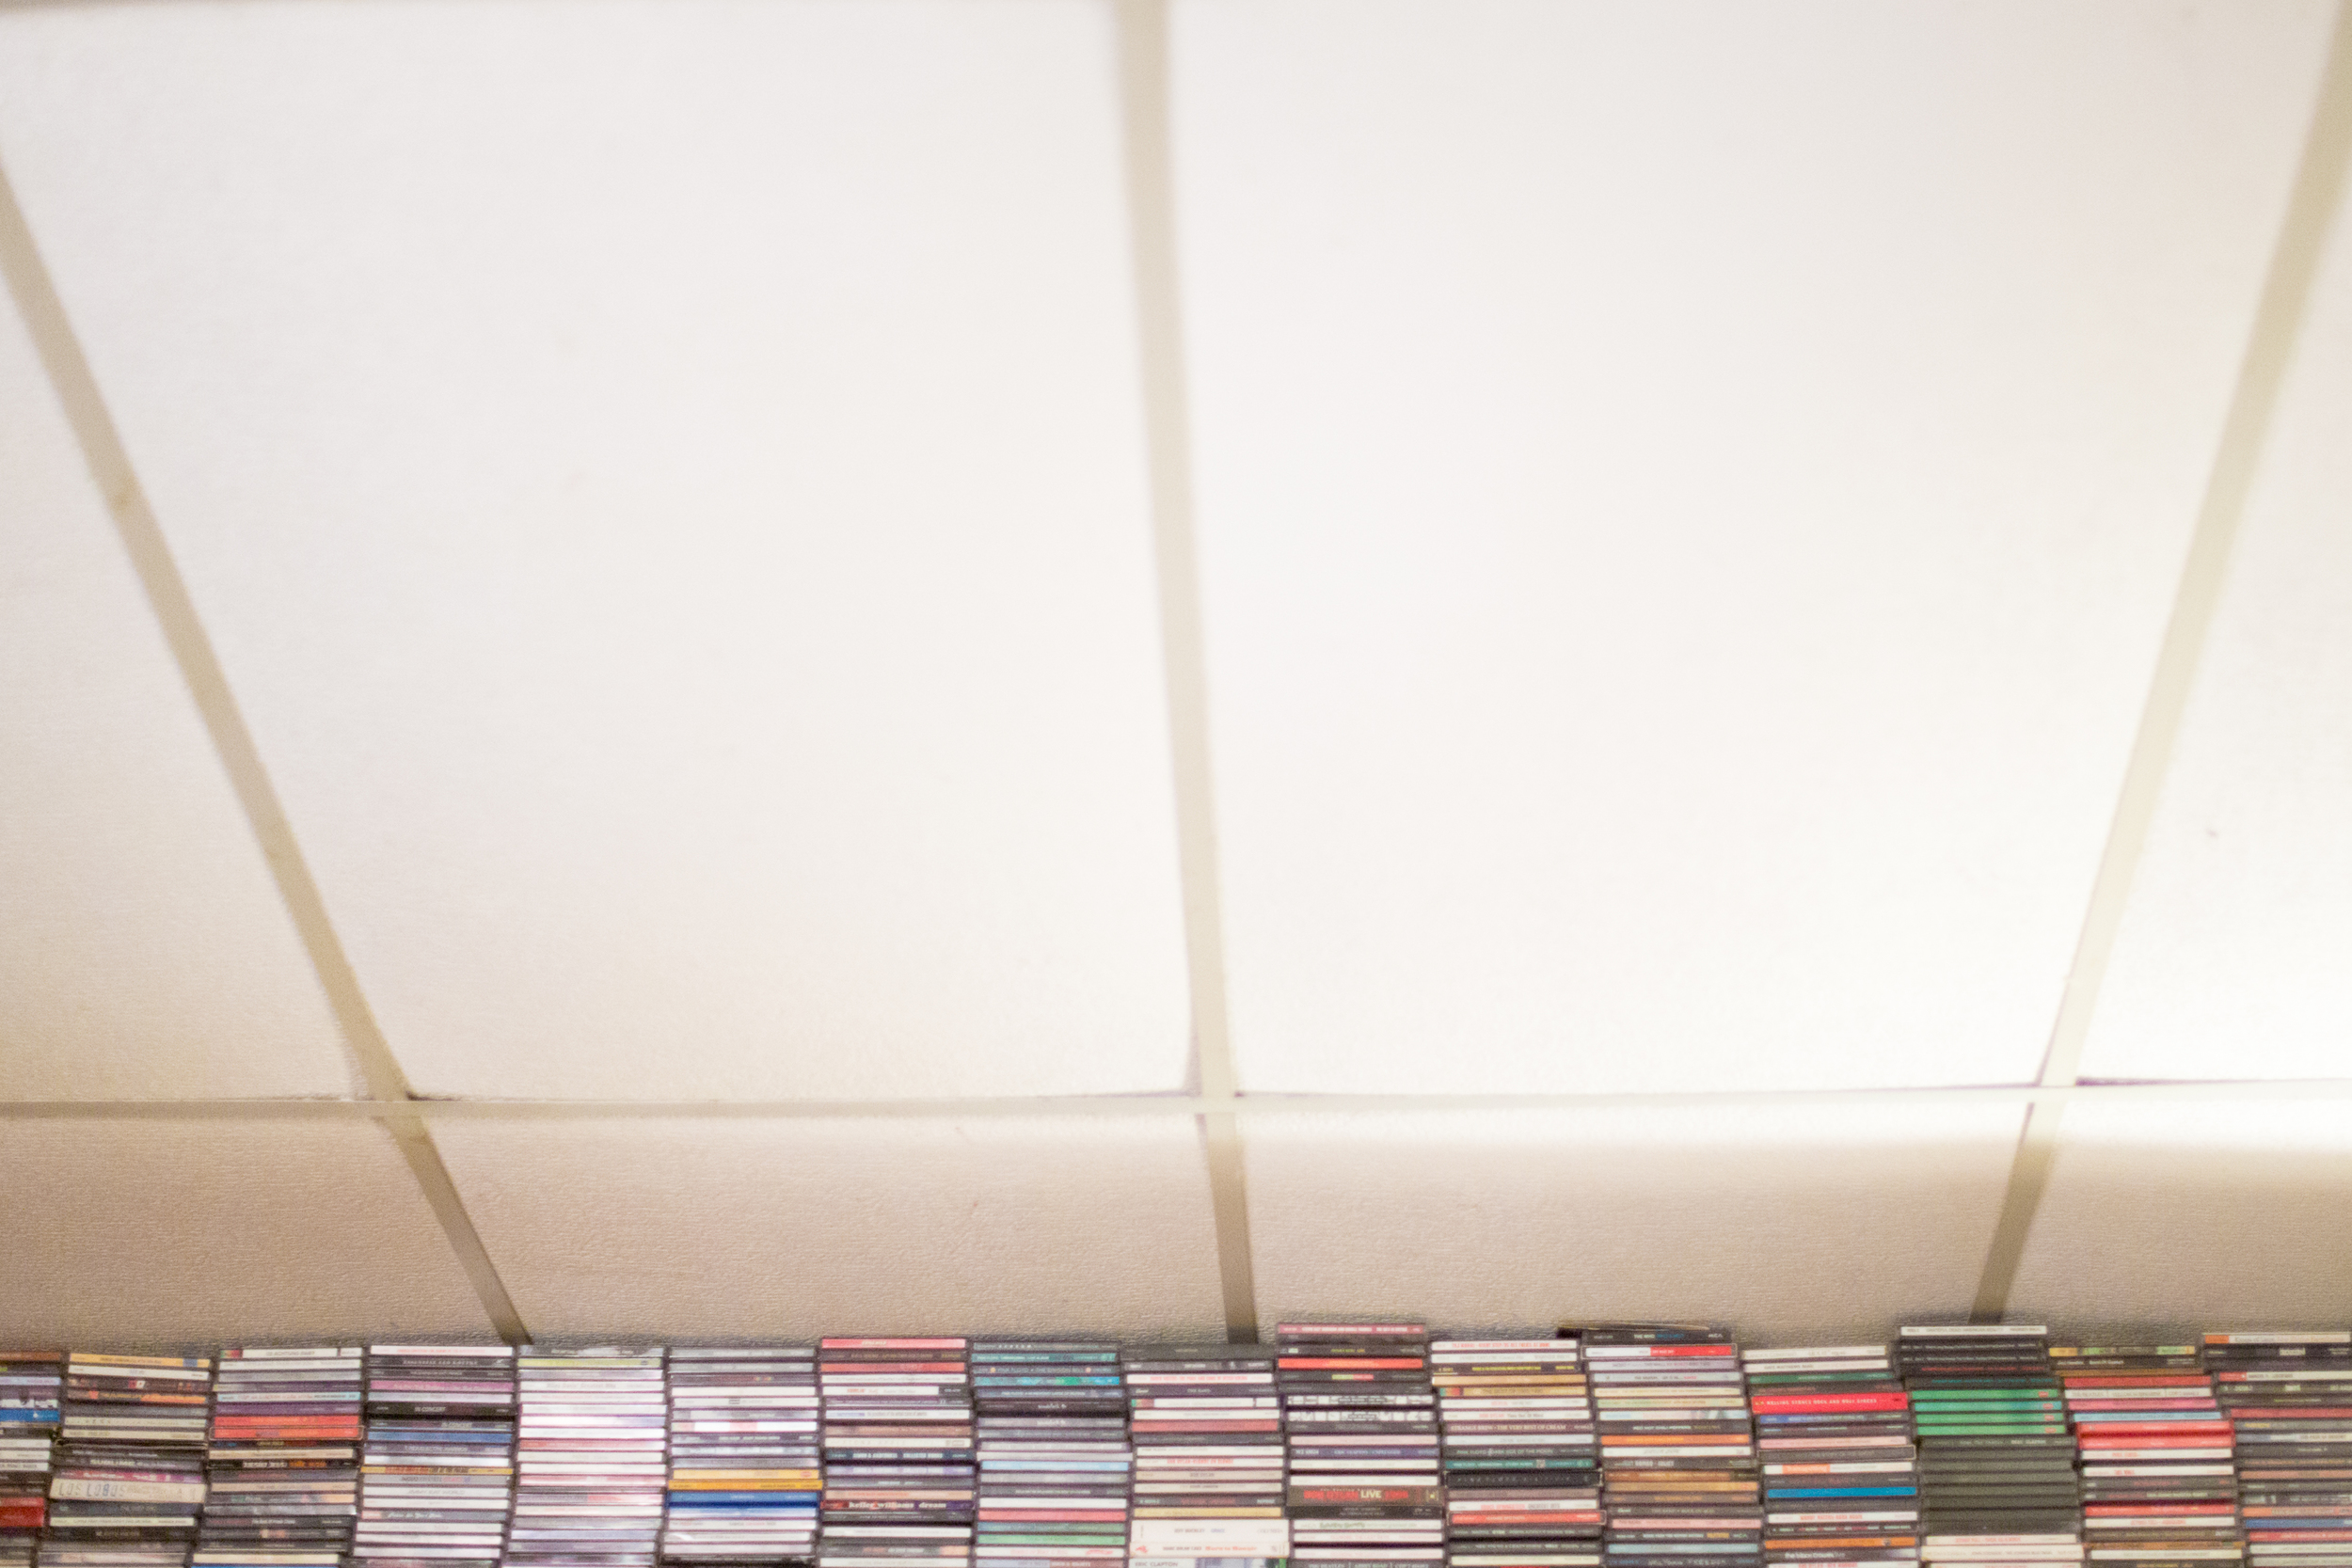 8 // 366 Basement tapes accidentally placed in last week's post...